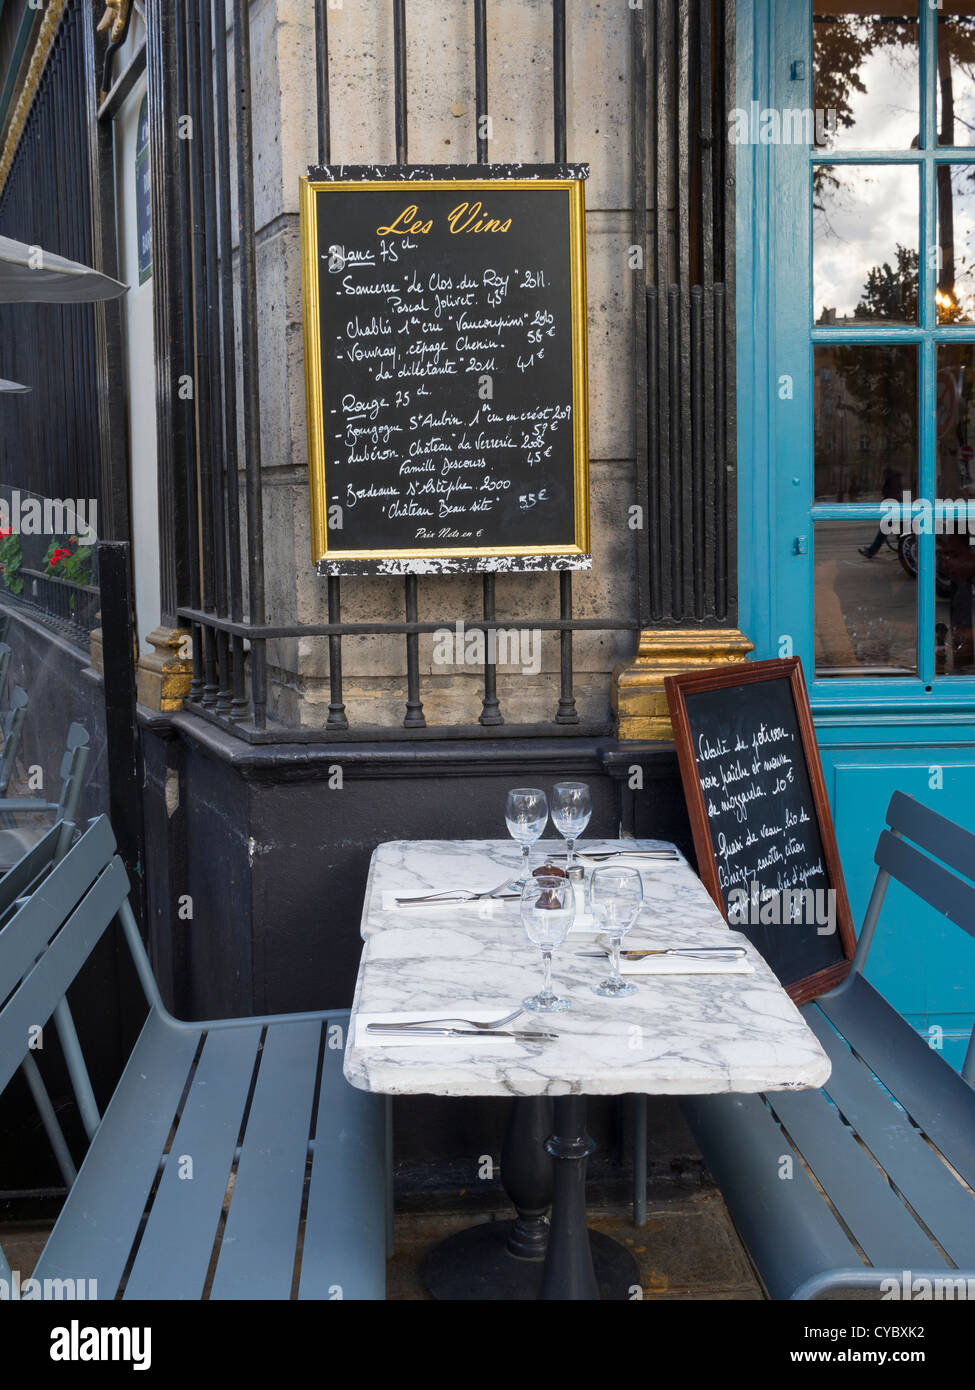 Chalkboard above tables and benches at an outdoor cafe in Paris Stock Photo